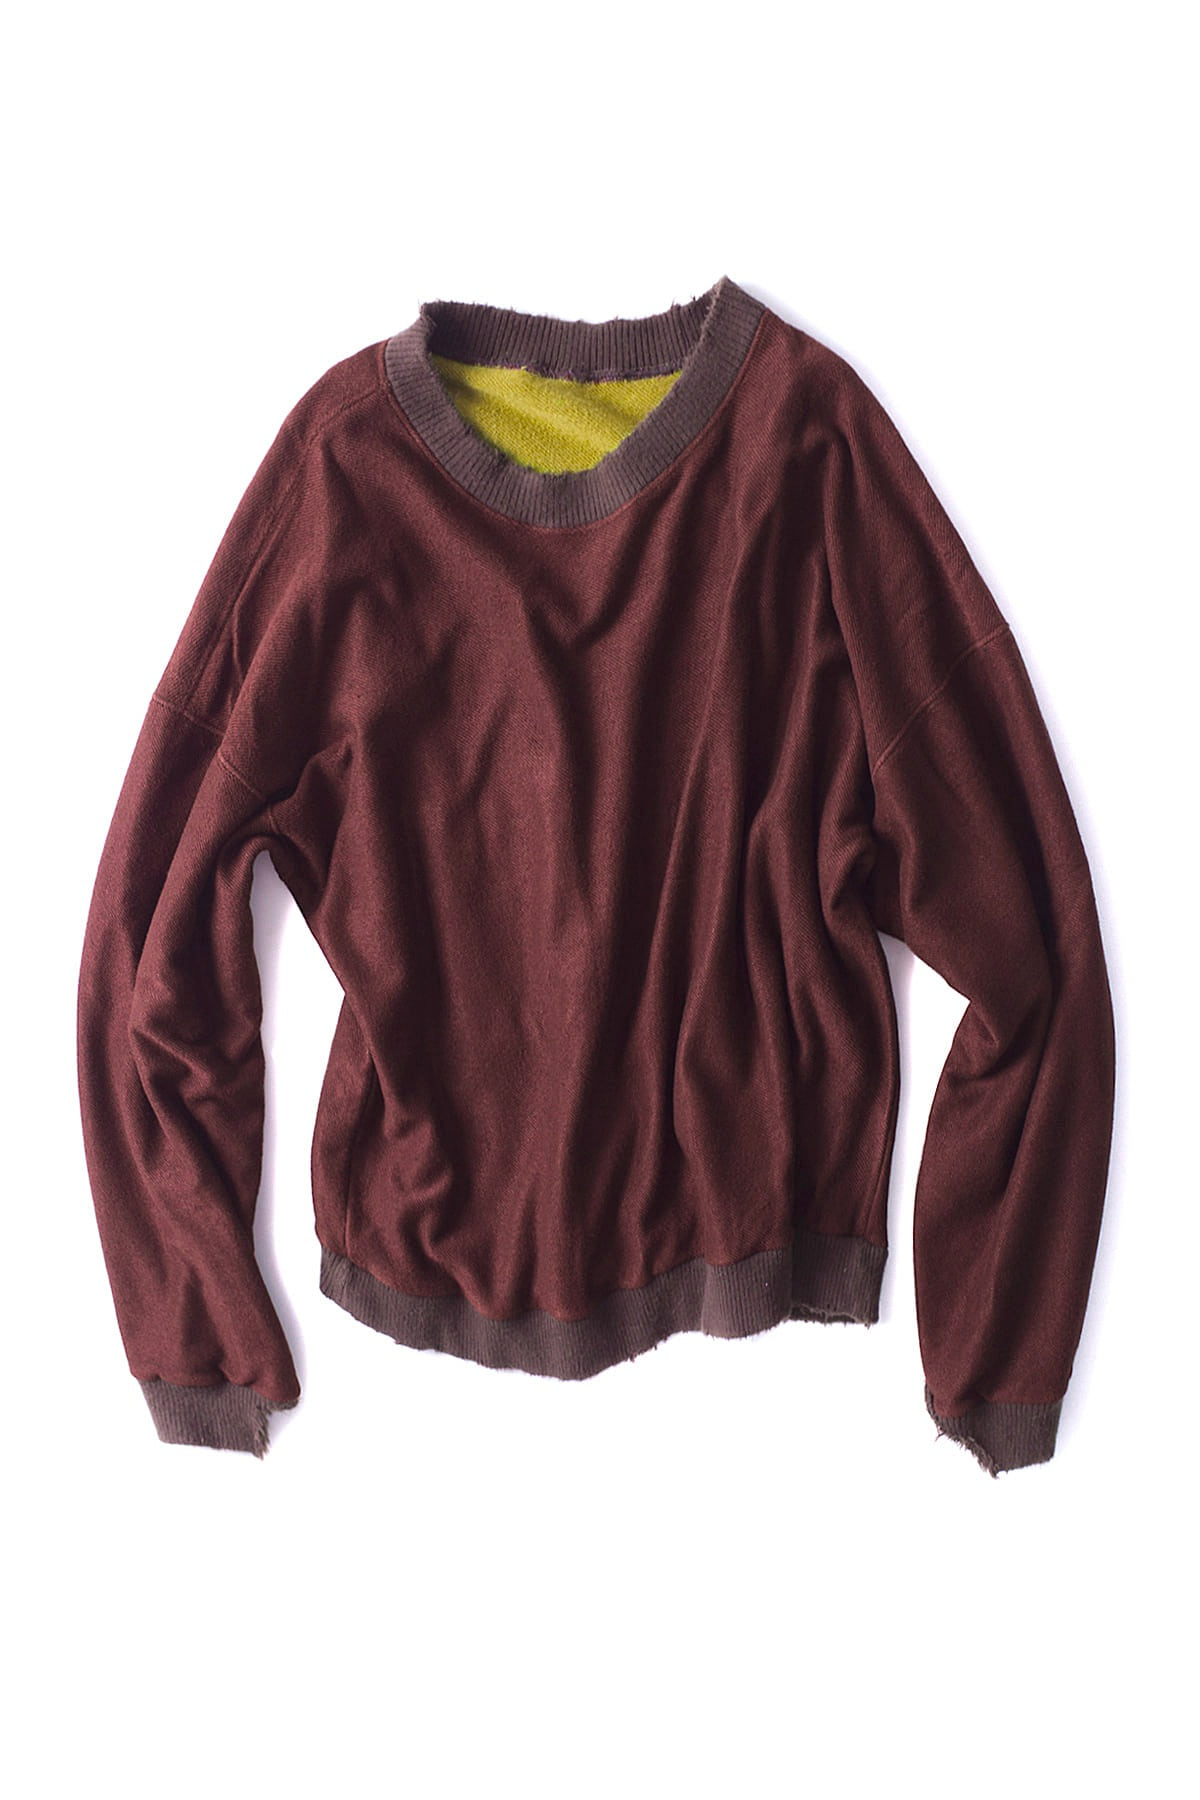 BIRTHDAYSUIT : Super Soft Reversible Pullover (Brown)